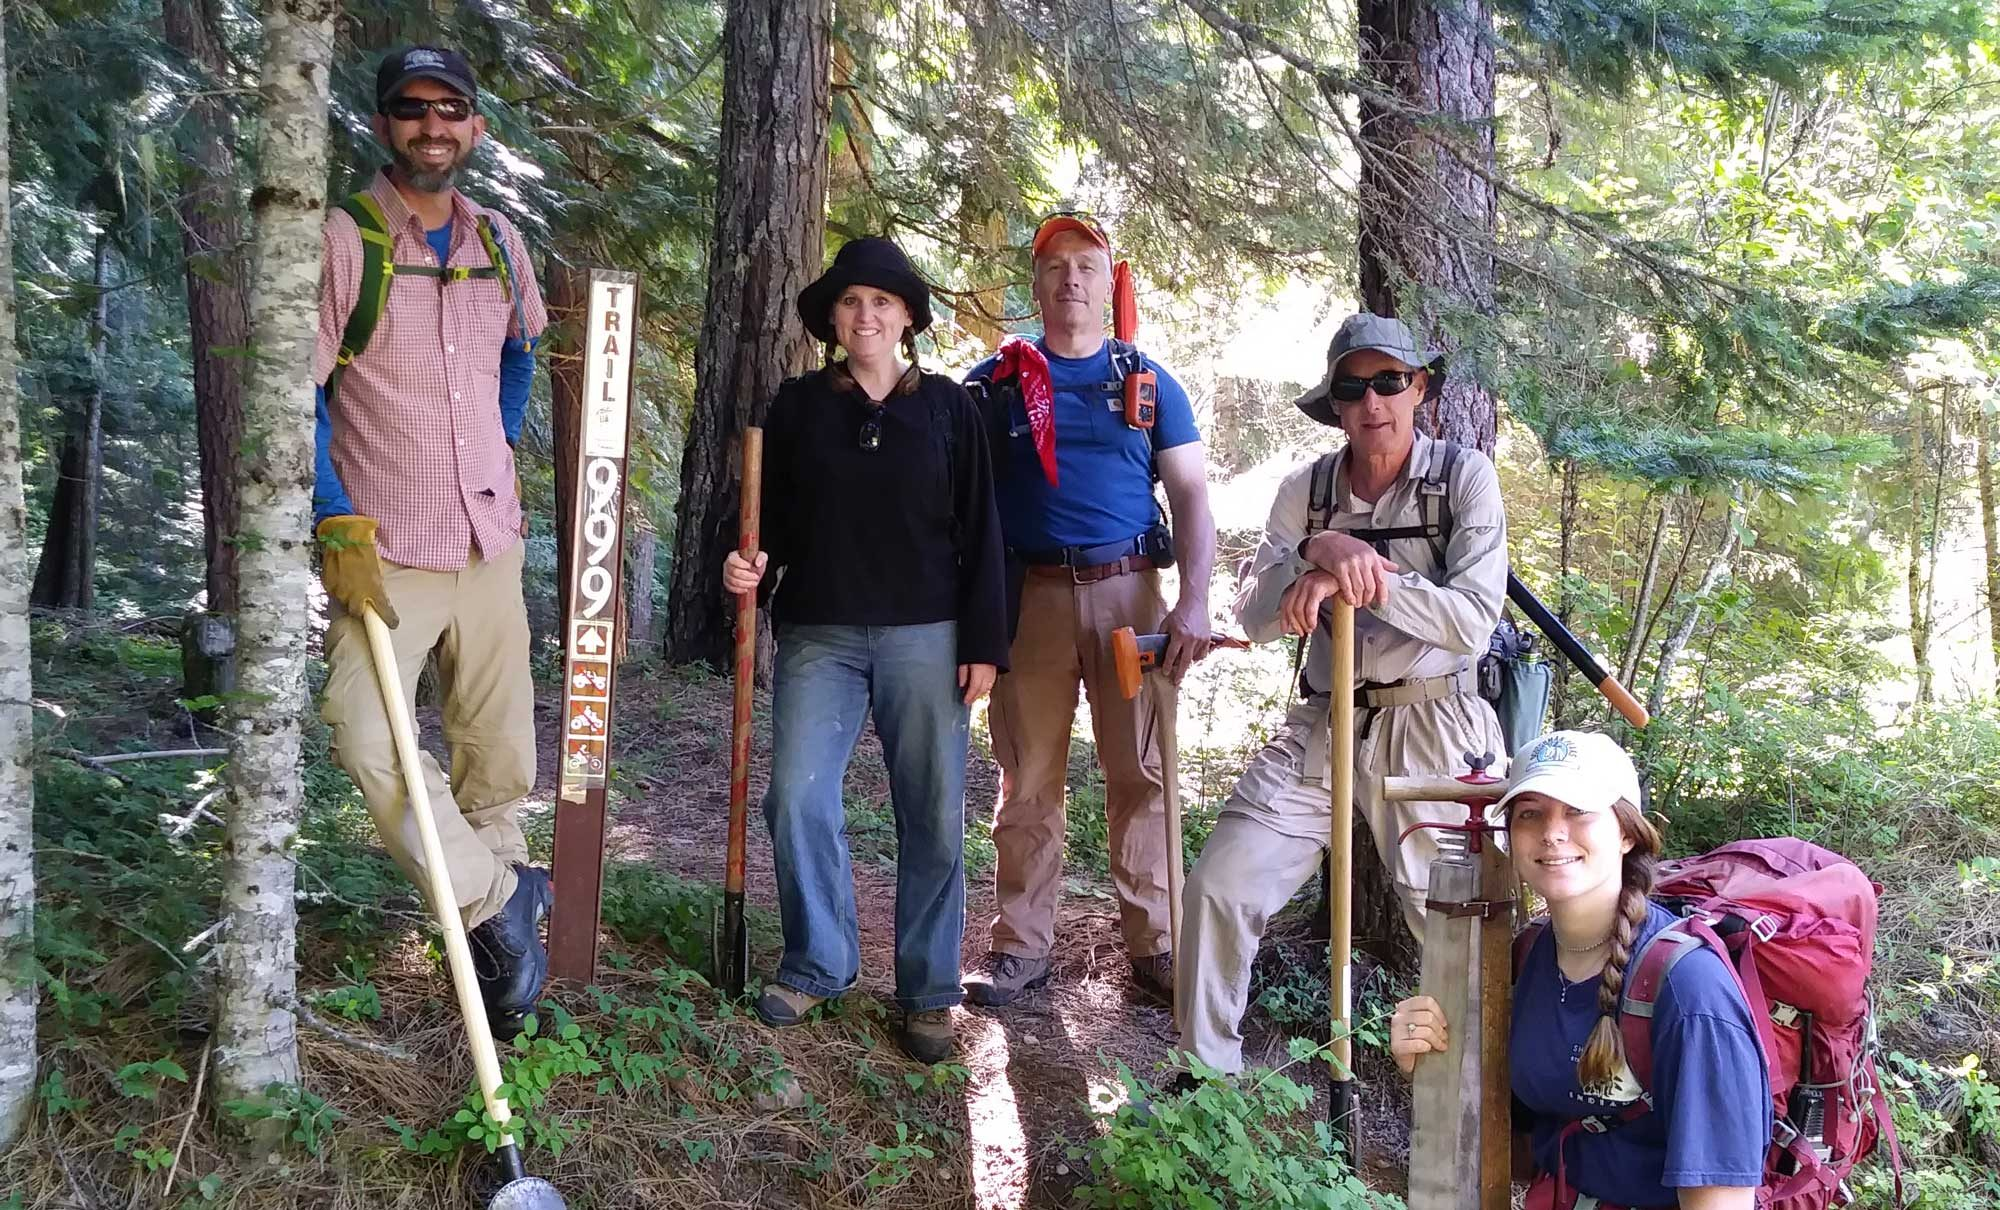 FSPW volunteers keep trails open (and fun)